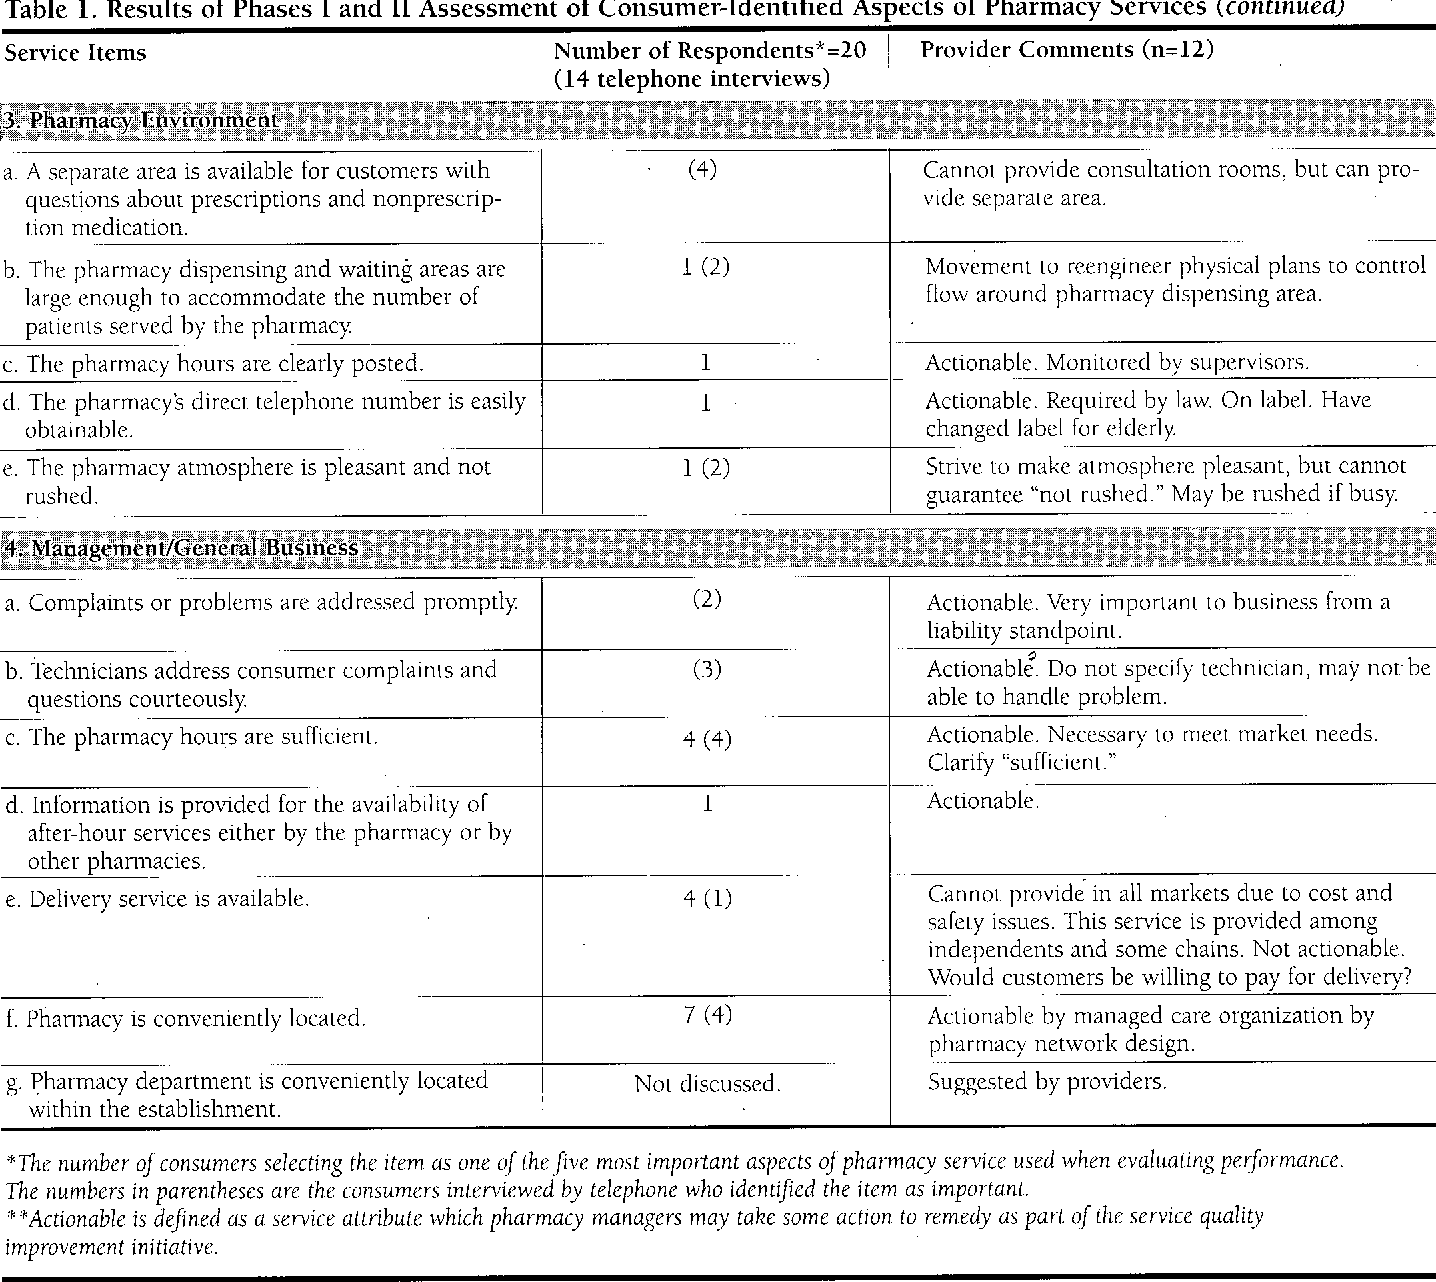 Table 1 from Response-Oriented Patient Evaluation Survey